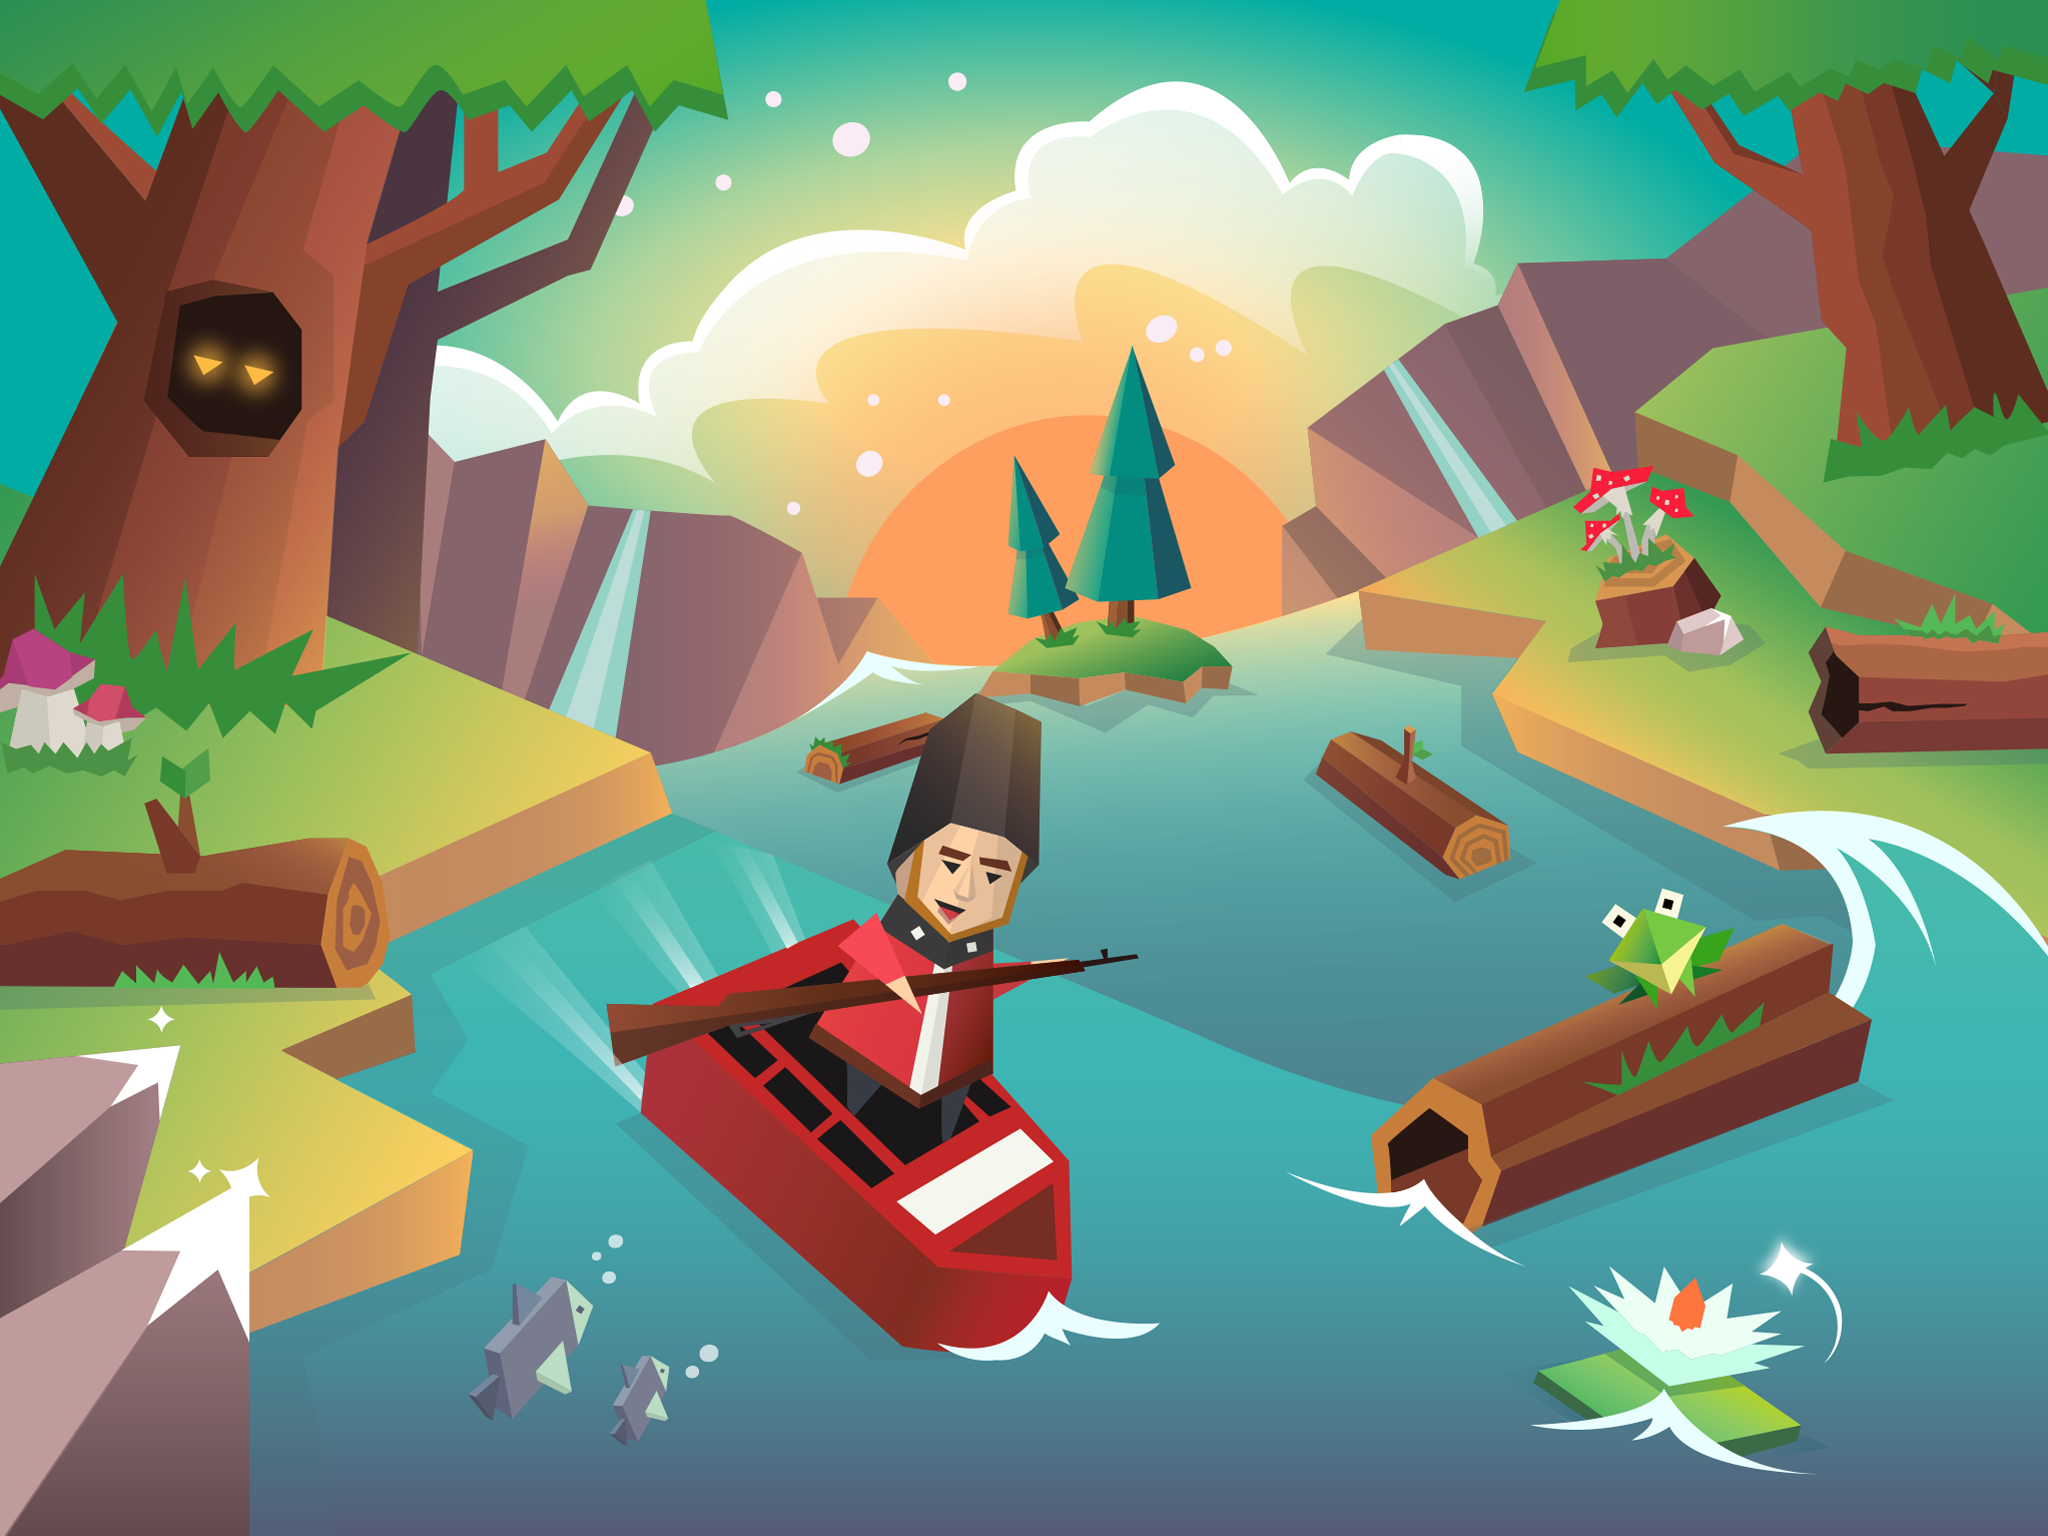 Magic River Game On Behance - River game